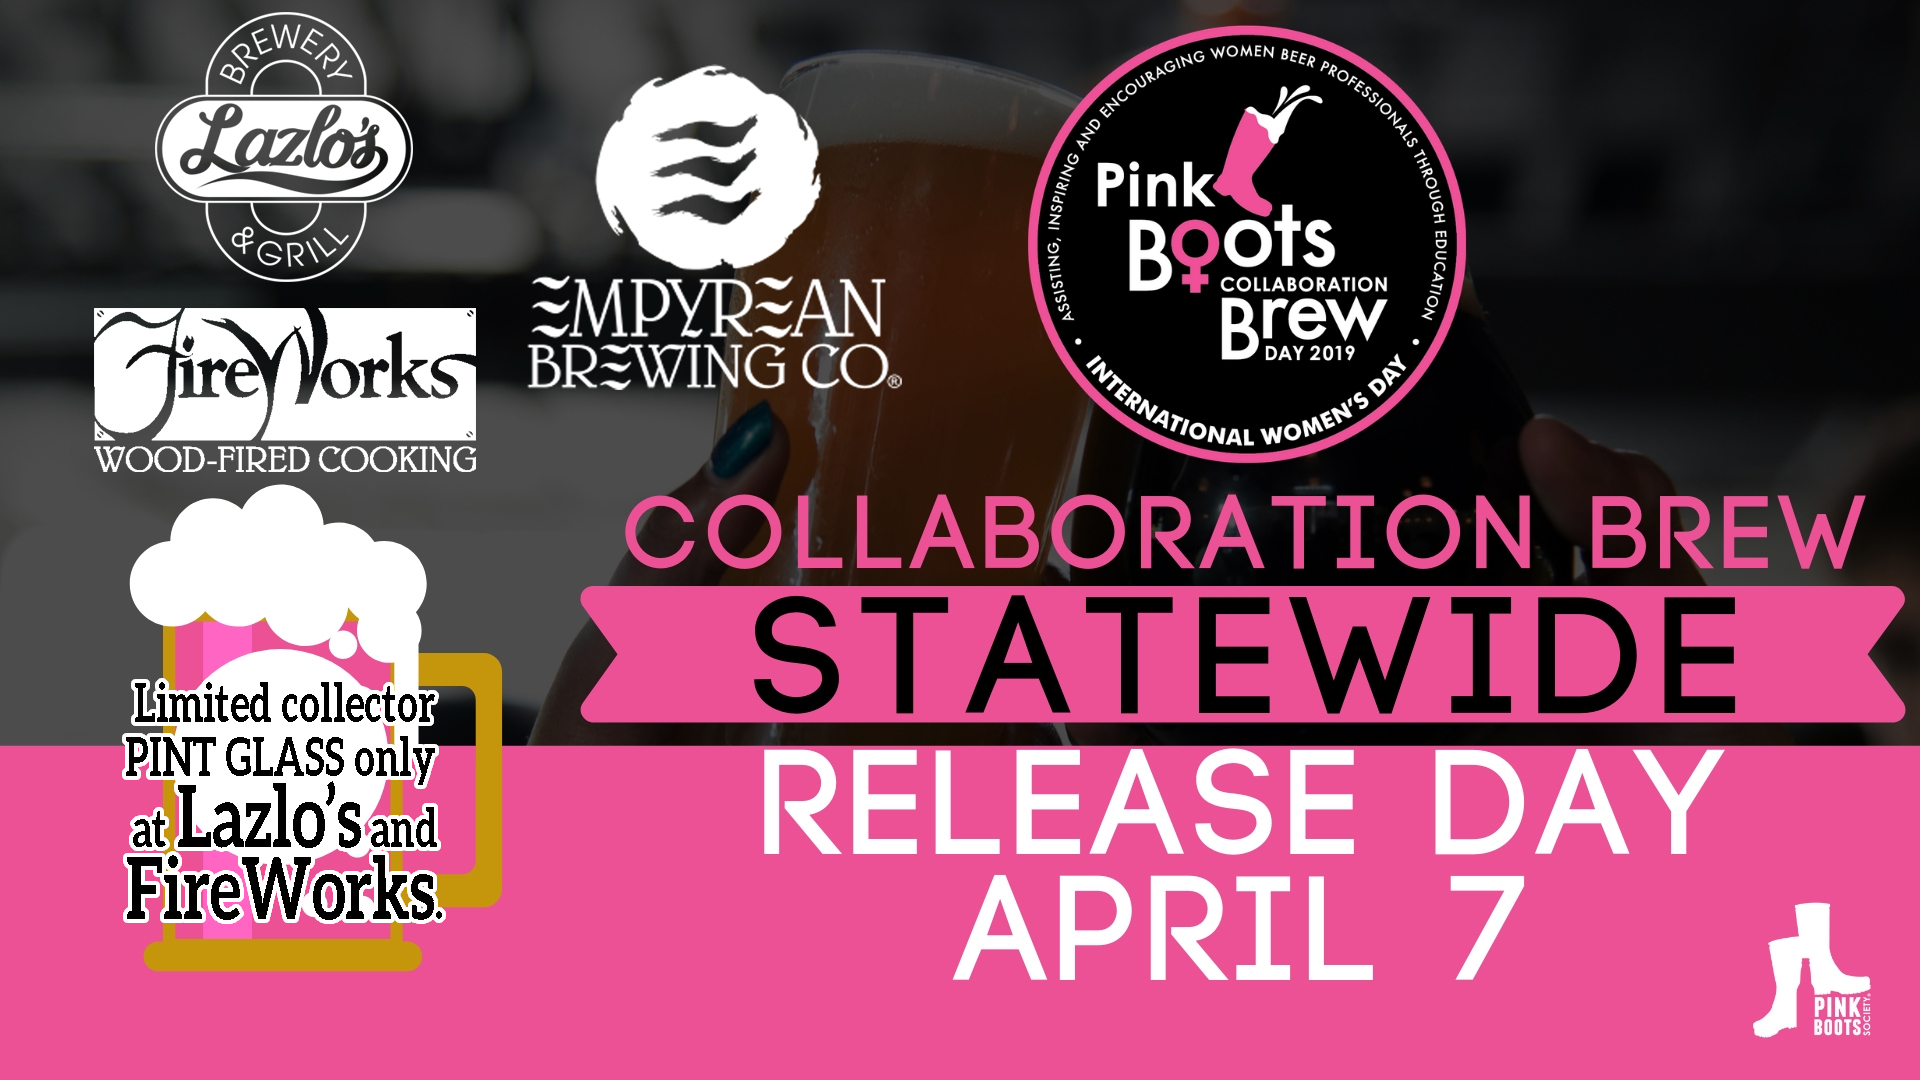 Pink Boots Nebraska Collaboration Beer 2019